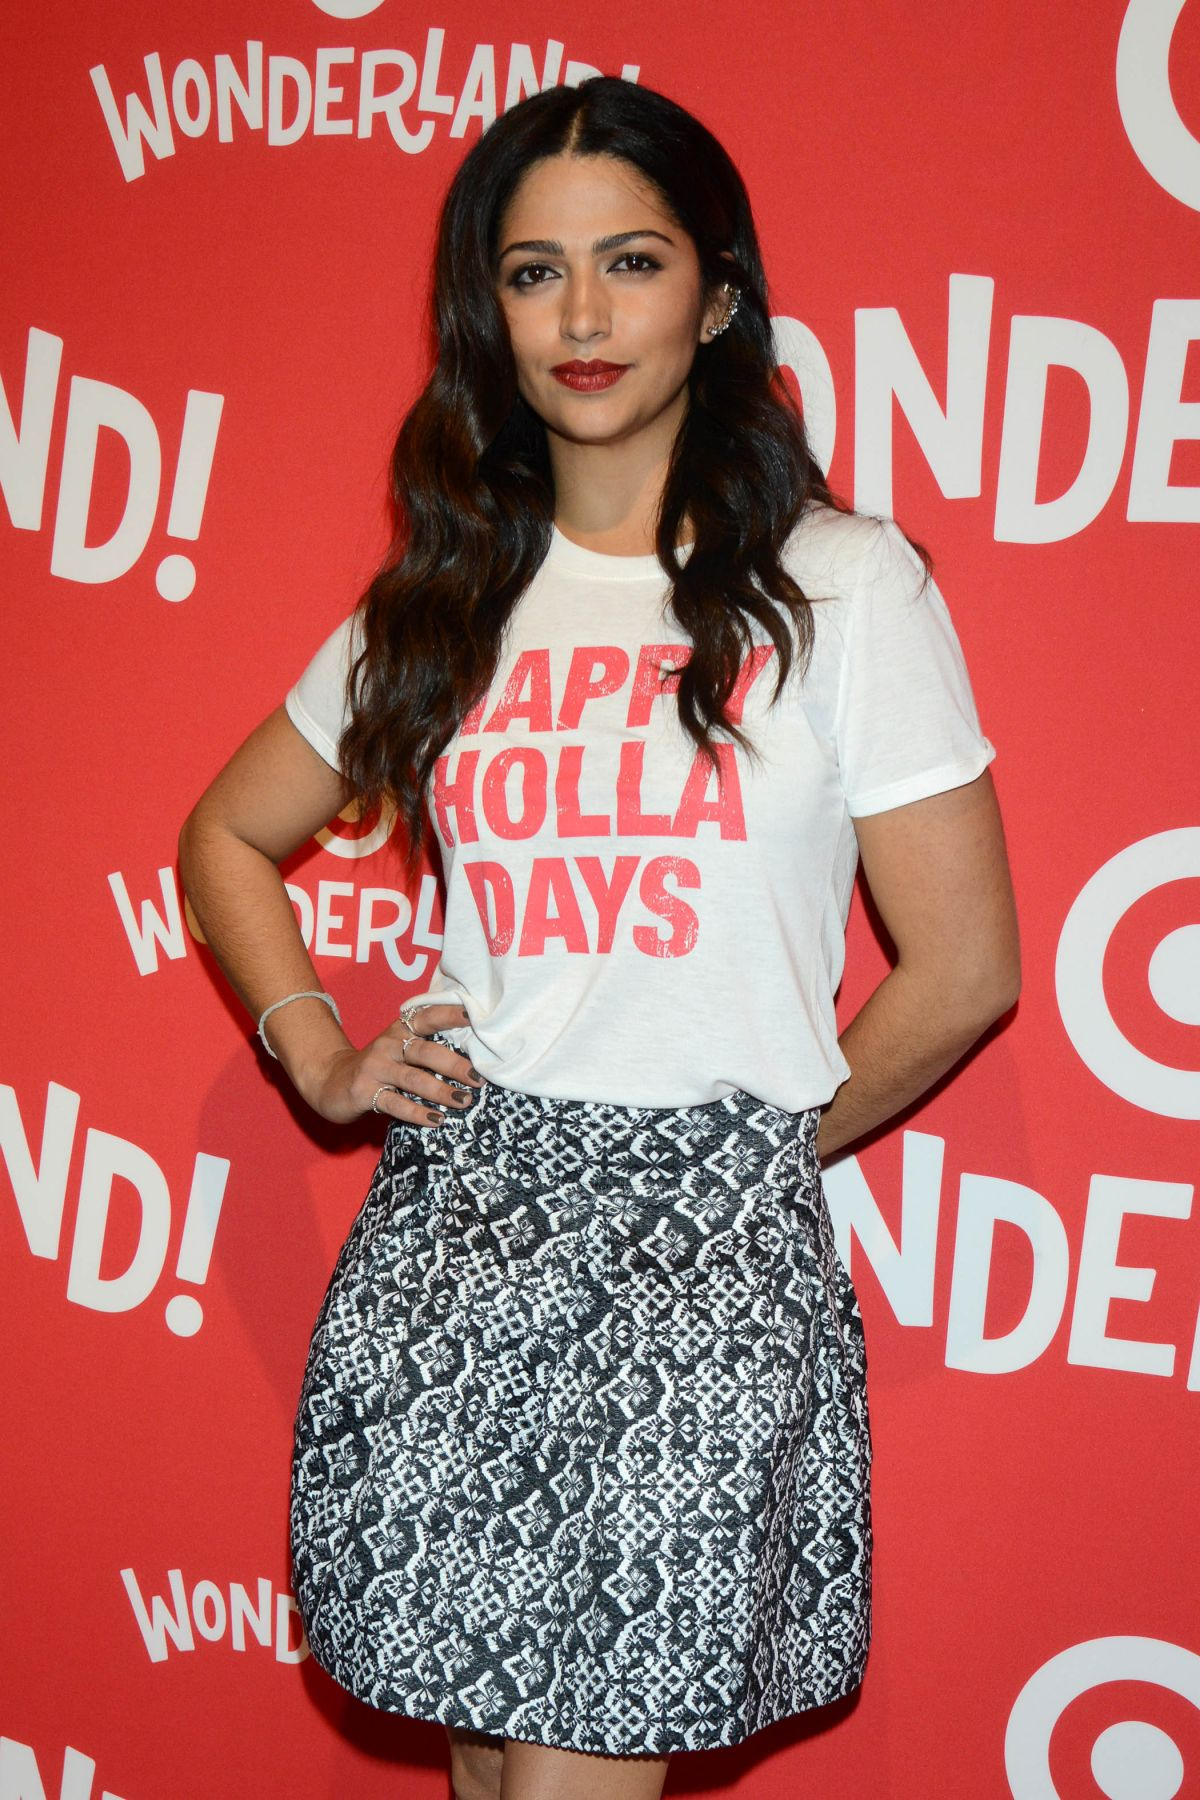 camila-alves-at-target-wonderland-vip-party-kick-off-in-new-york-12-07-2015_1